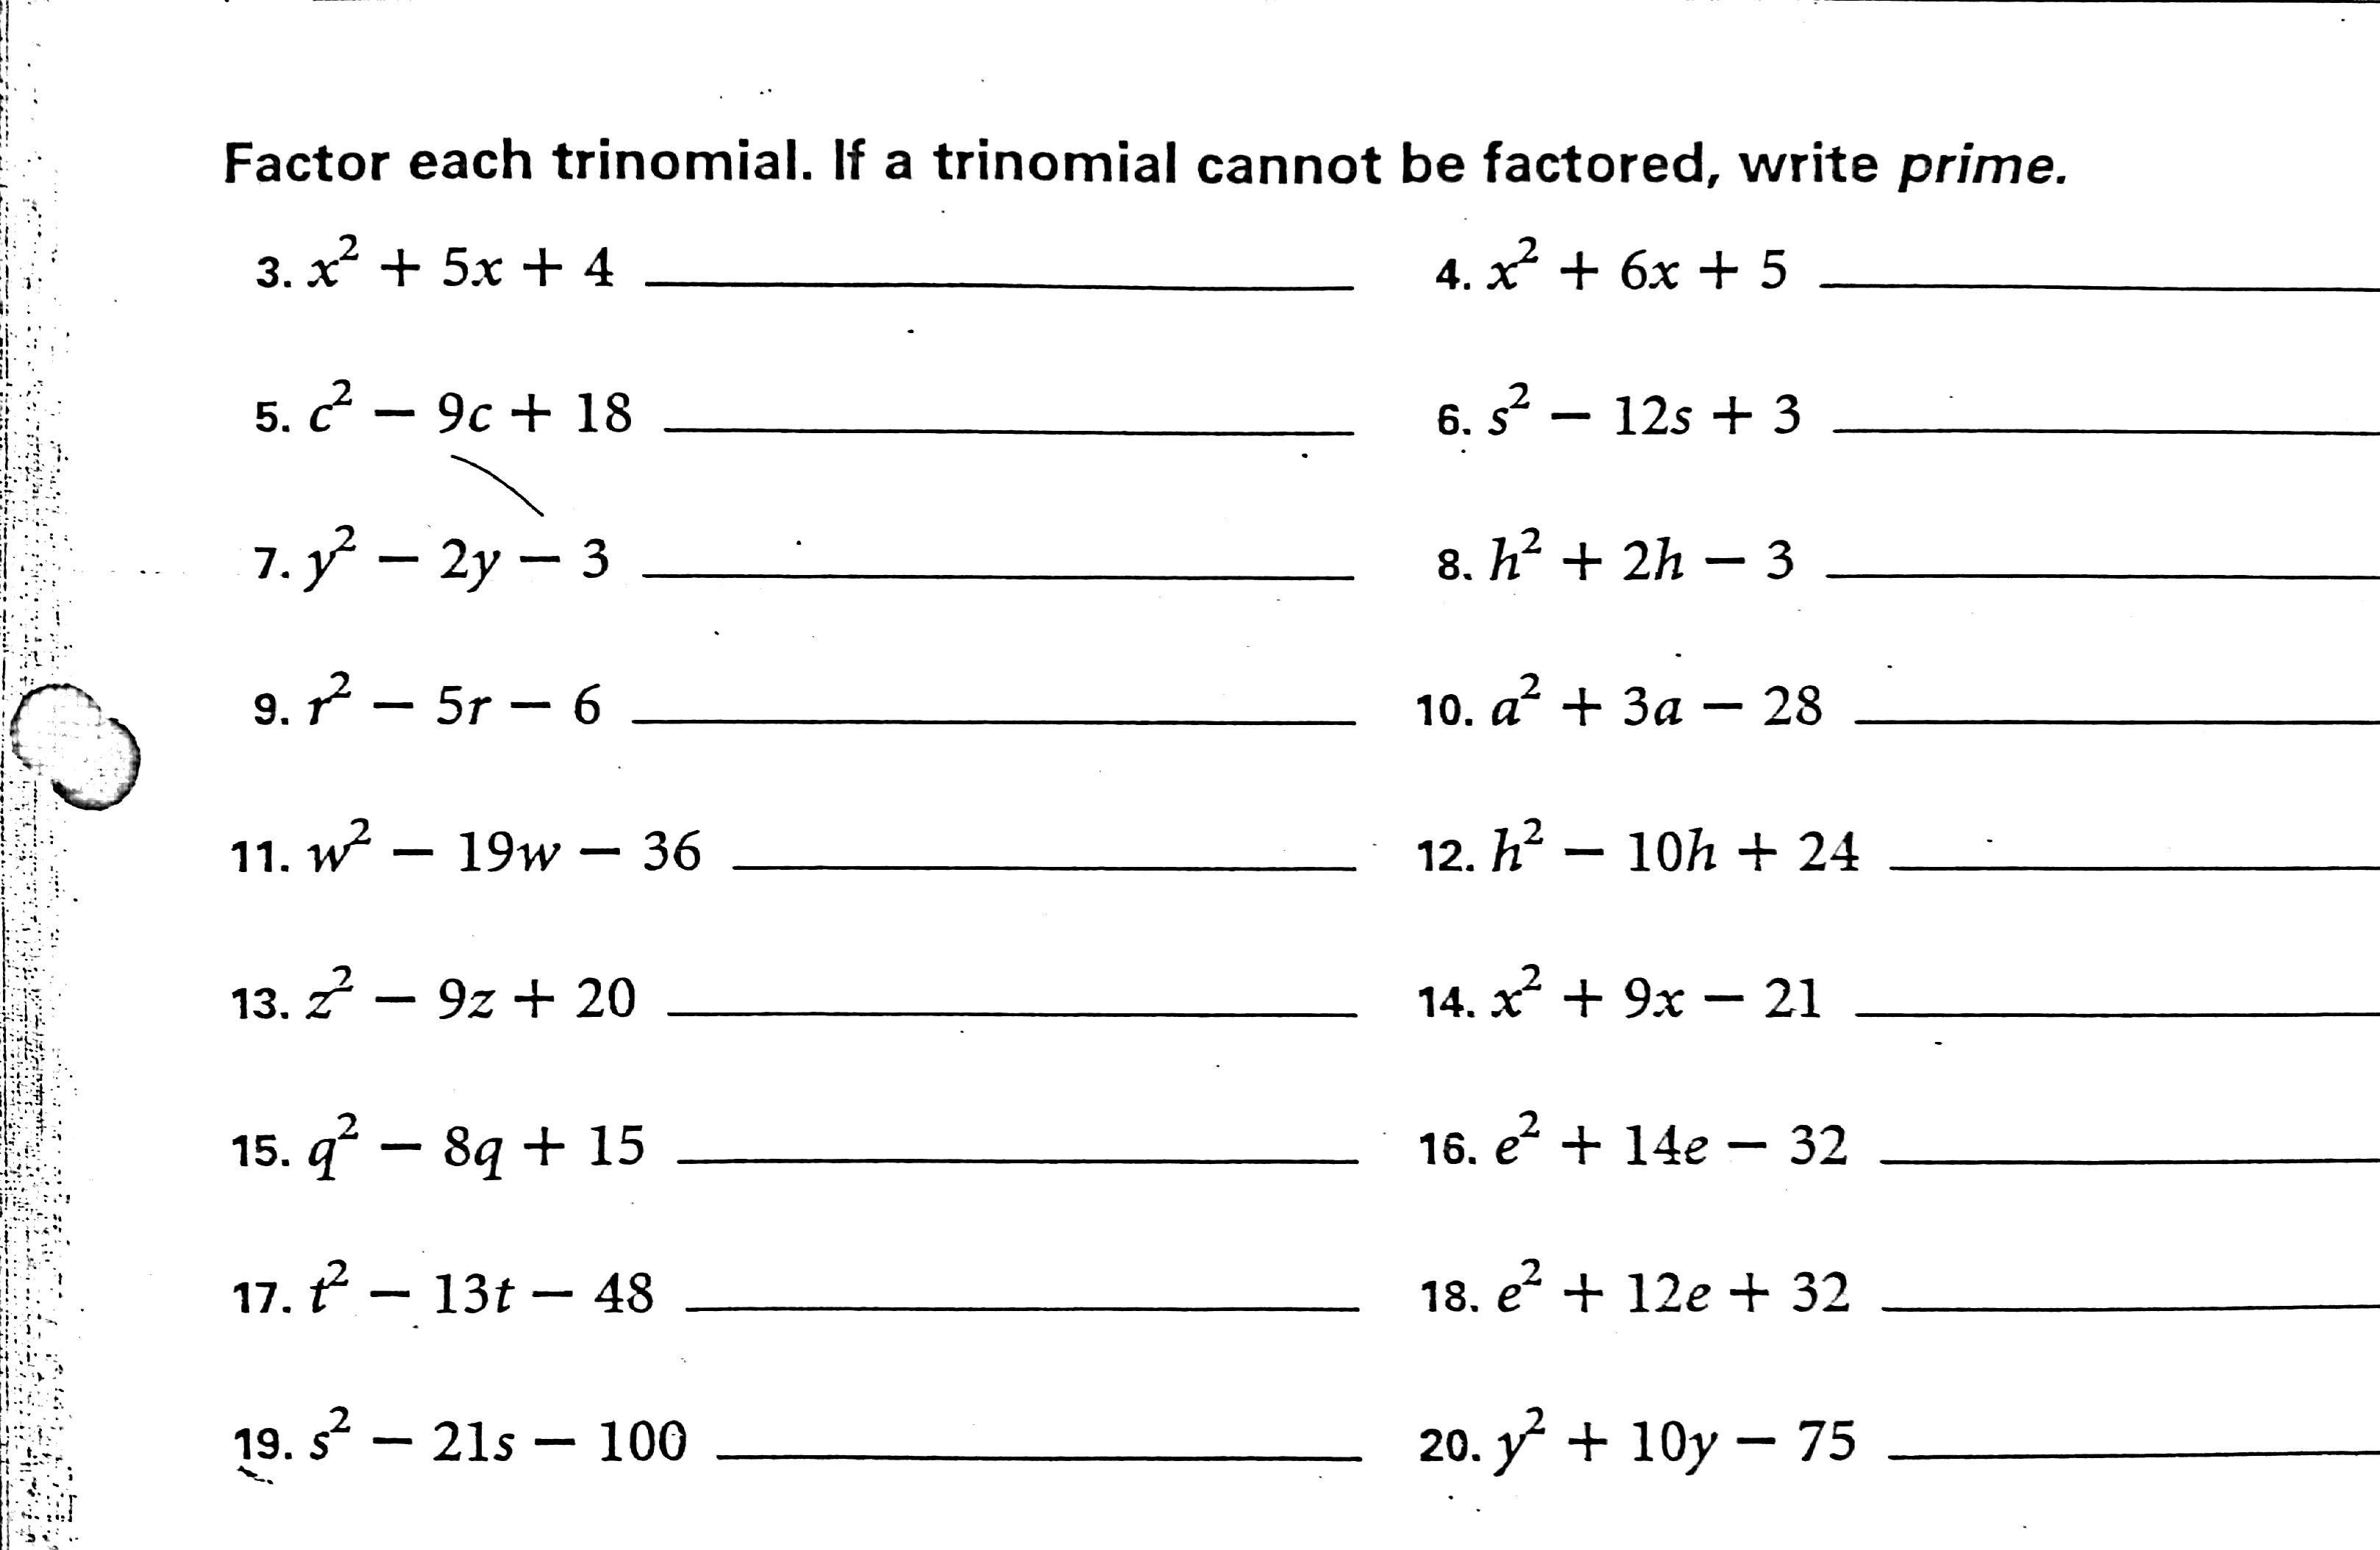 Proatmealus  Winning Factoring Worksheet  Delwfgcom With Entrancing Factoring Polynomials Practice Worksheet With Answers Coterraneo With Astounding Subtracting Polynomials Worksheet With Answers Also Integers Worksheet Pdf In Addition Shape Coloring Worksheets And K Worksheets As Well As Multiplication Fluency Worksheets Additionally Motion Problems Worksheet From Delwfgcom With Proatmealus  Entrancing Factoring Worksheet  Delwfgcom With Astounding Factoring Polynomials Practice Worksheet With Answers Coterraneo And Winning Subtracting Polynomials Worksheet With Answers Also Integers Worksheet Pdf In Addition Shape Coloring Worksheets From Delwfgcom